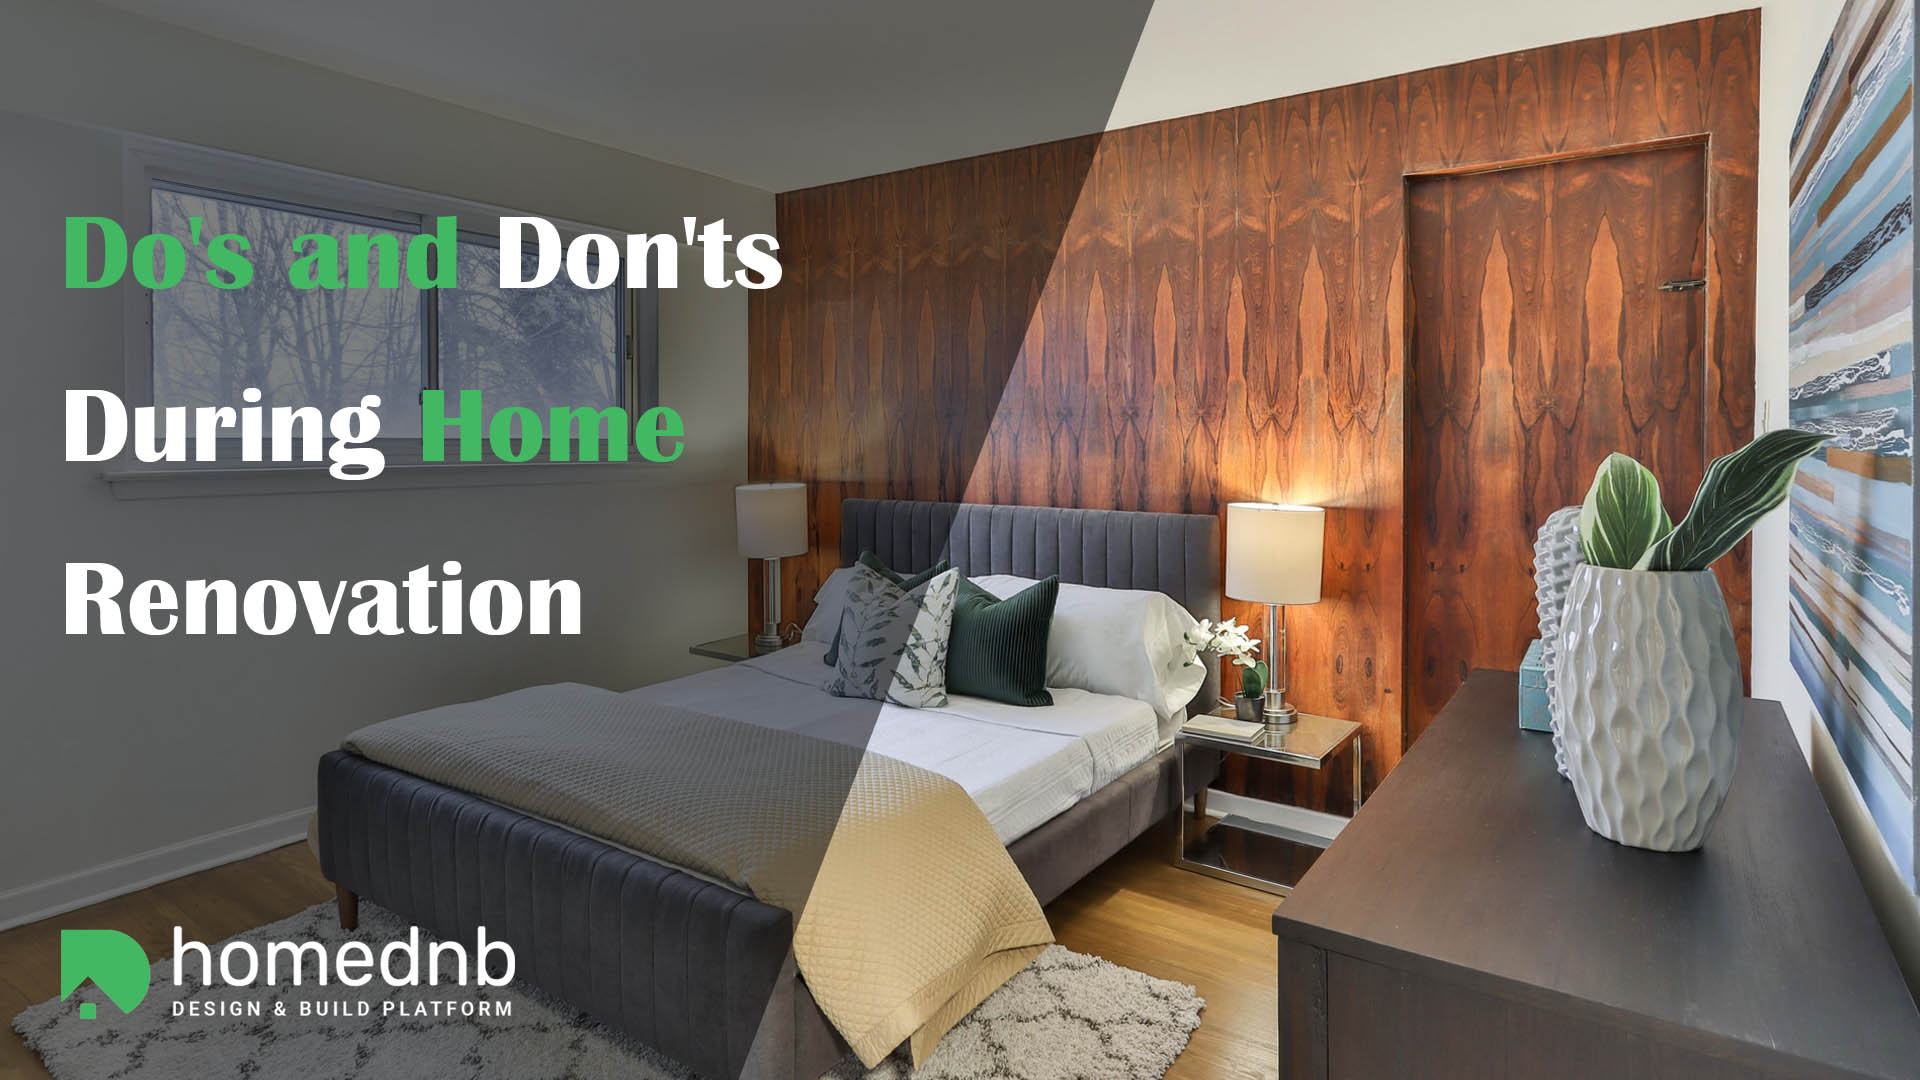 Do's and Don'ts During Home Renovation